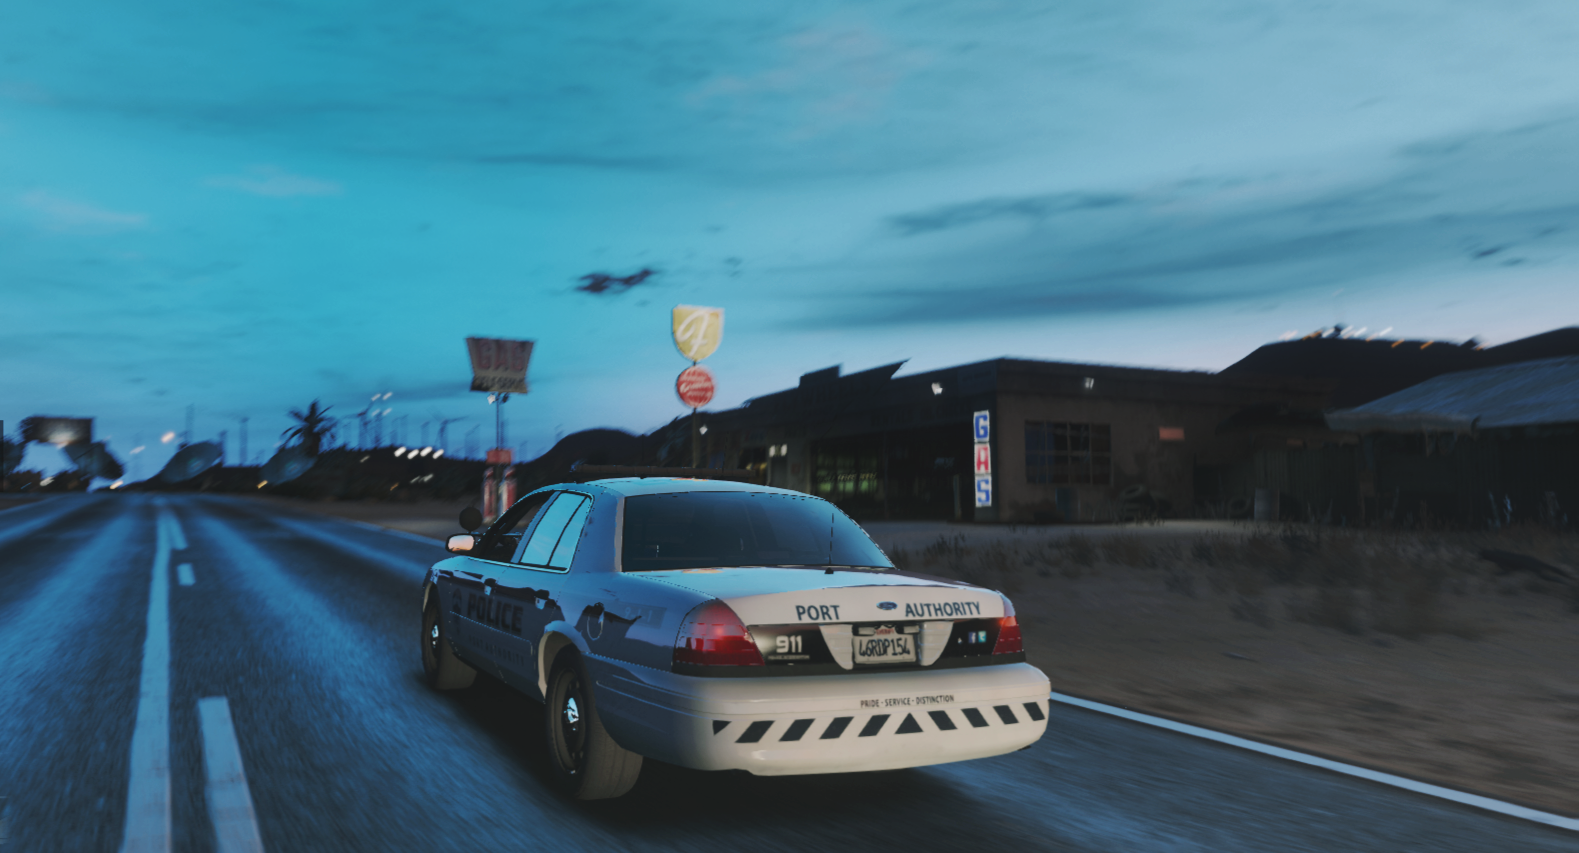 LSPA Driving into the night